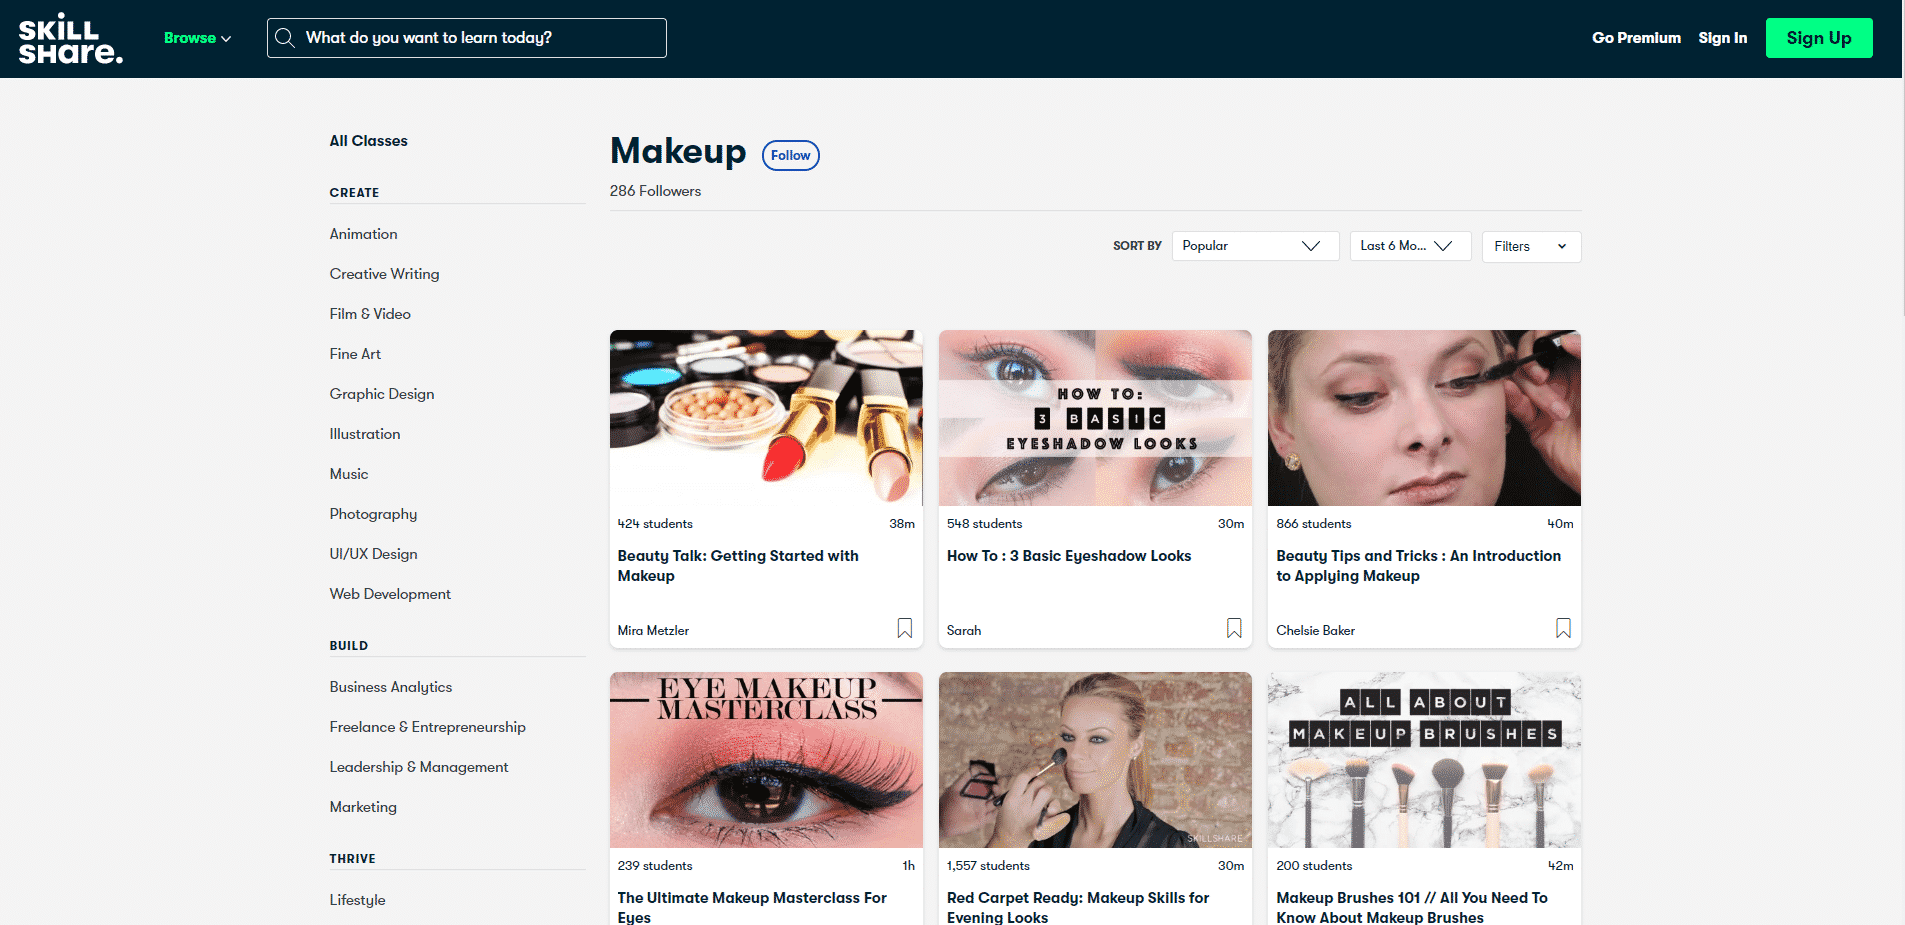 Skillshhare Learn Makeup and Beauty Lessons Online